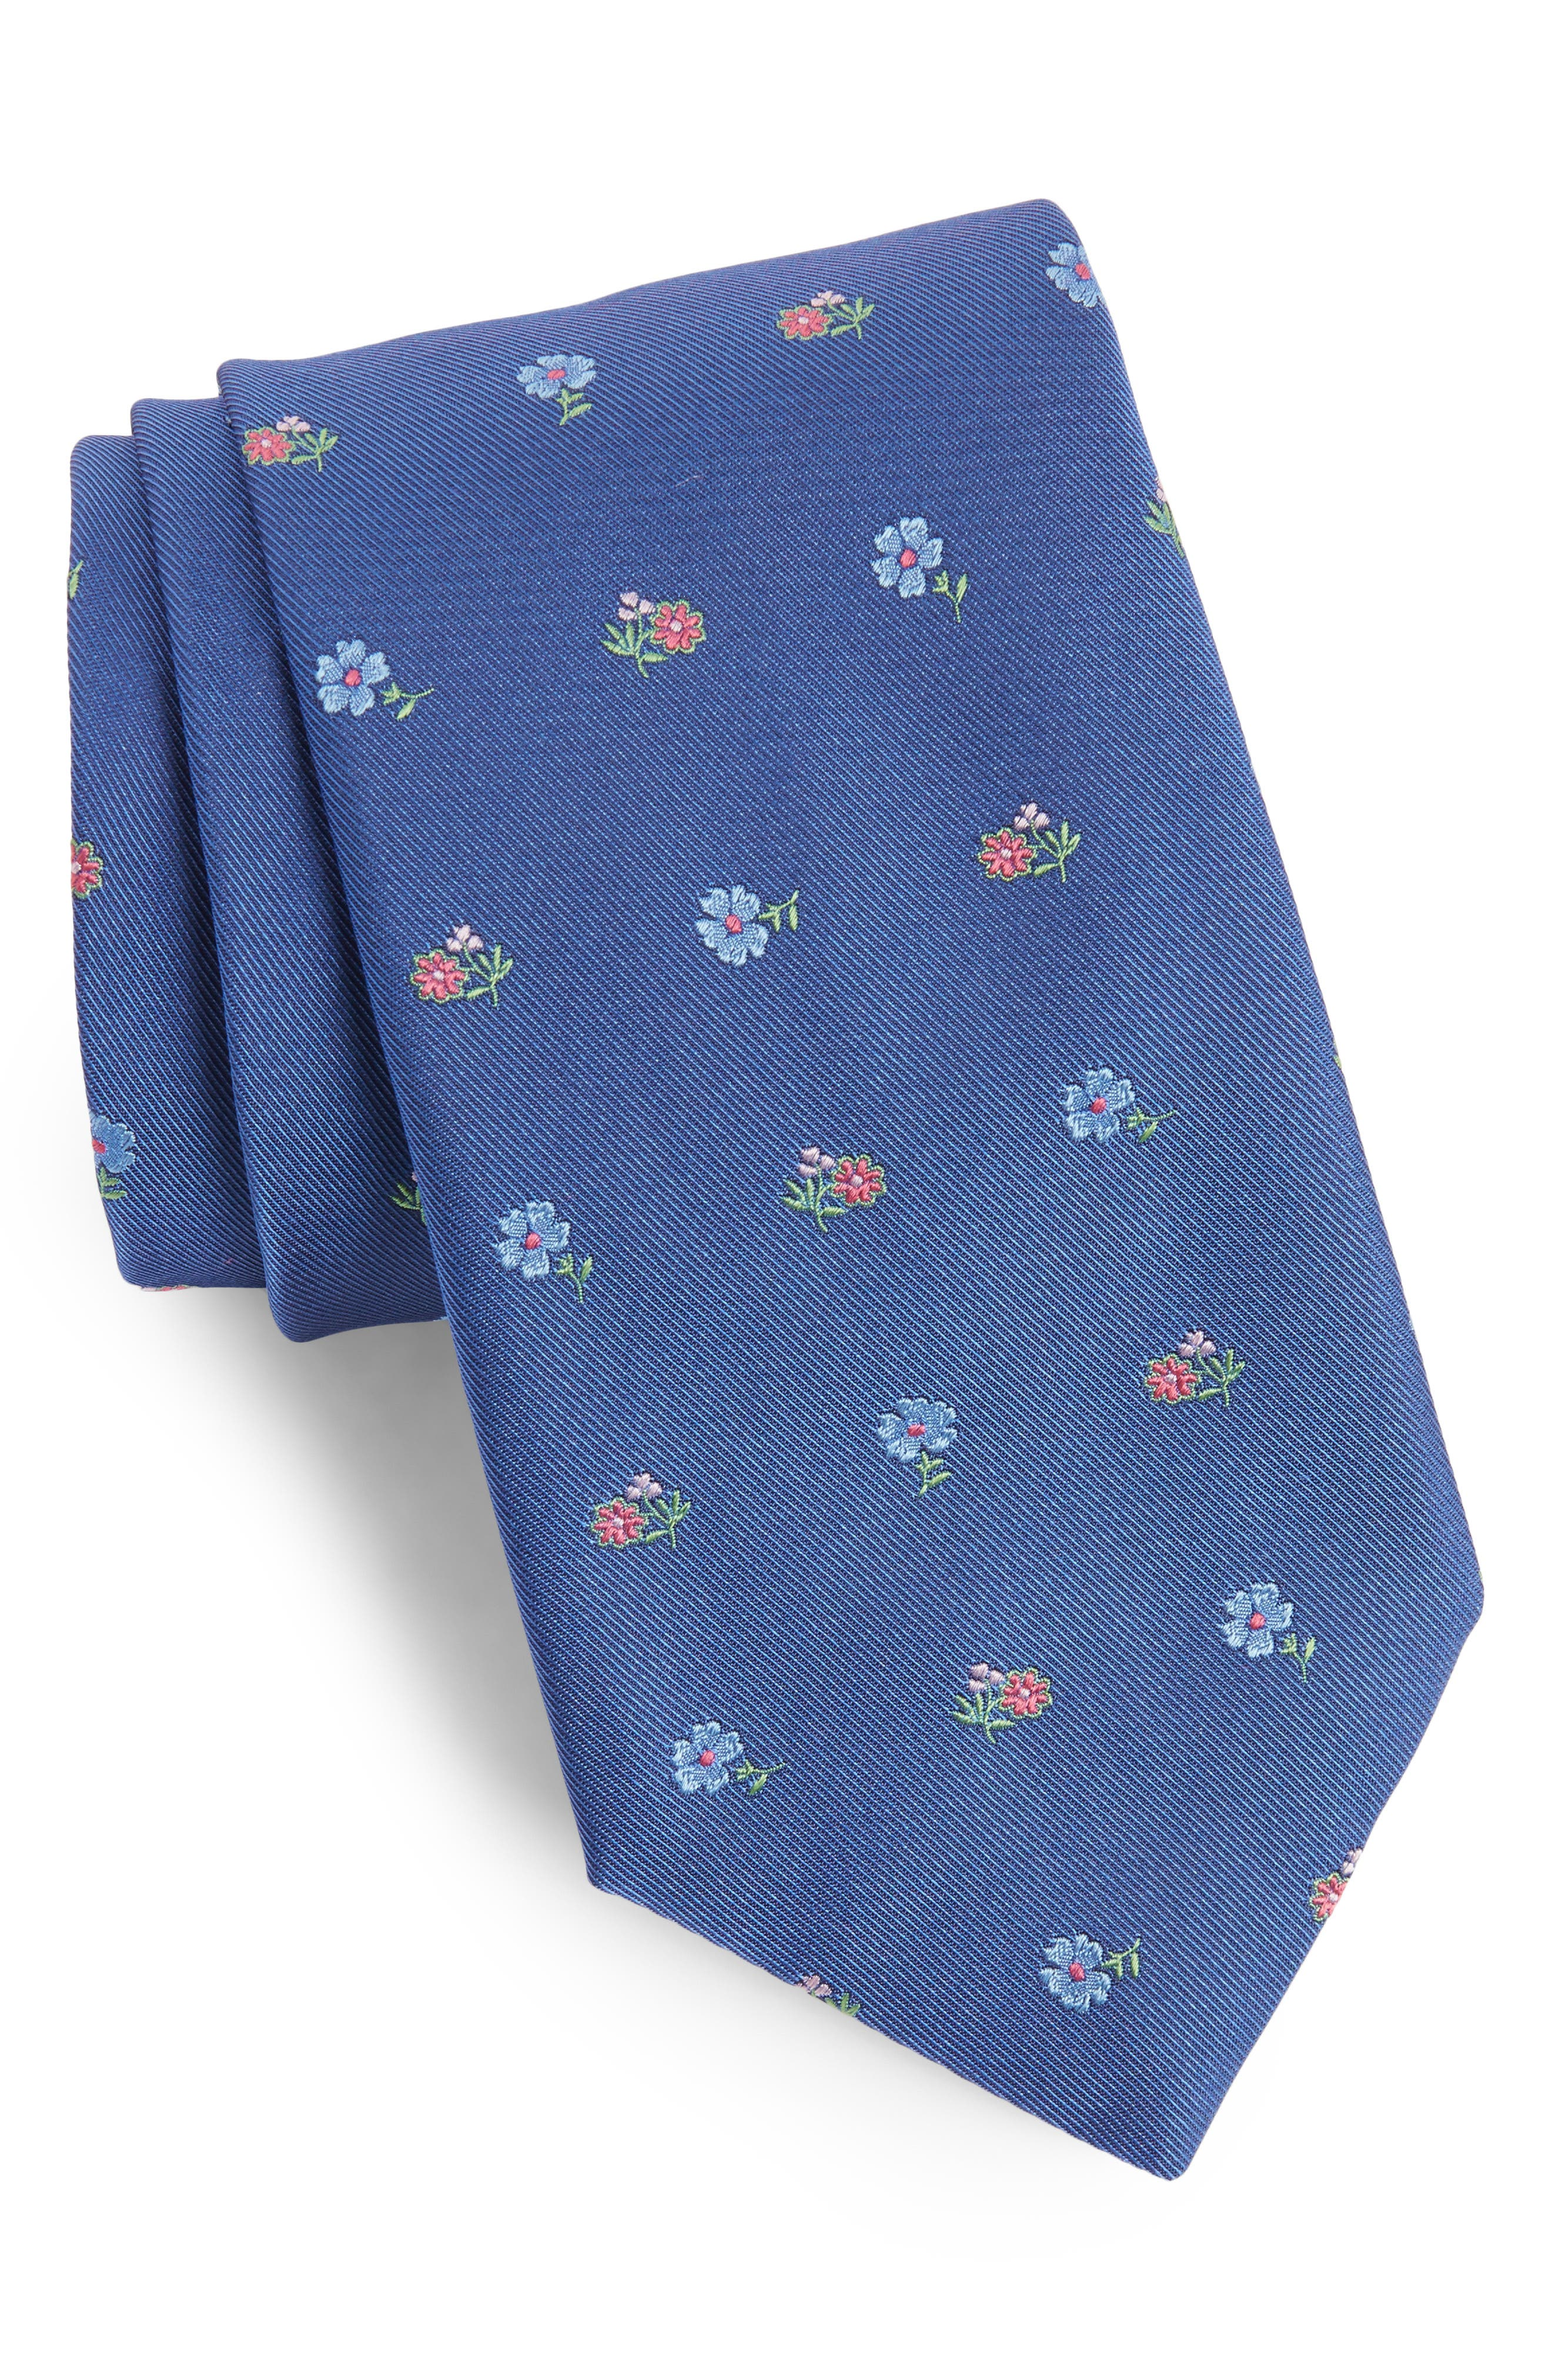 Floral Jacquard Silk Tie,                         Main,                         color,